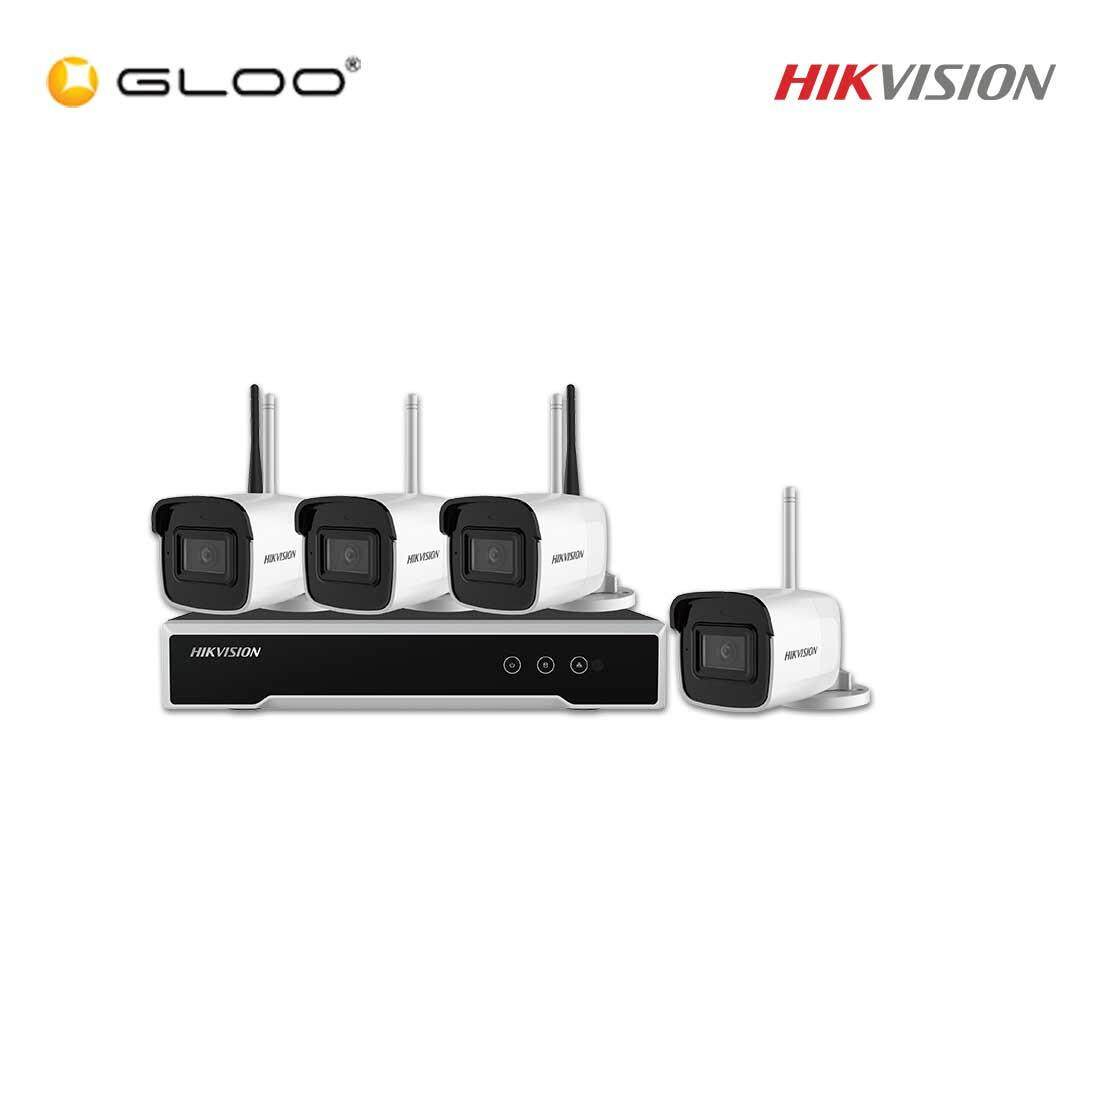 Hikvision DVR & Camera Kit NK44W0H-1T(WD) 4MP Bullet CCTV Kit